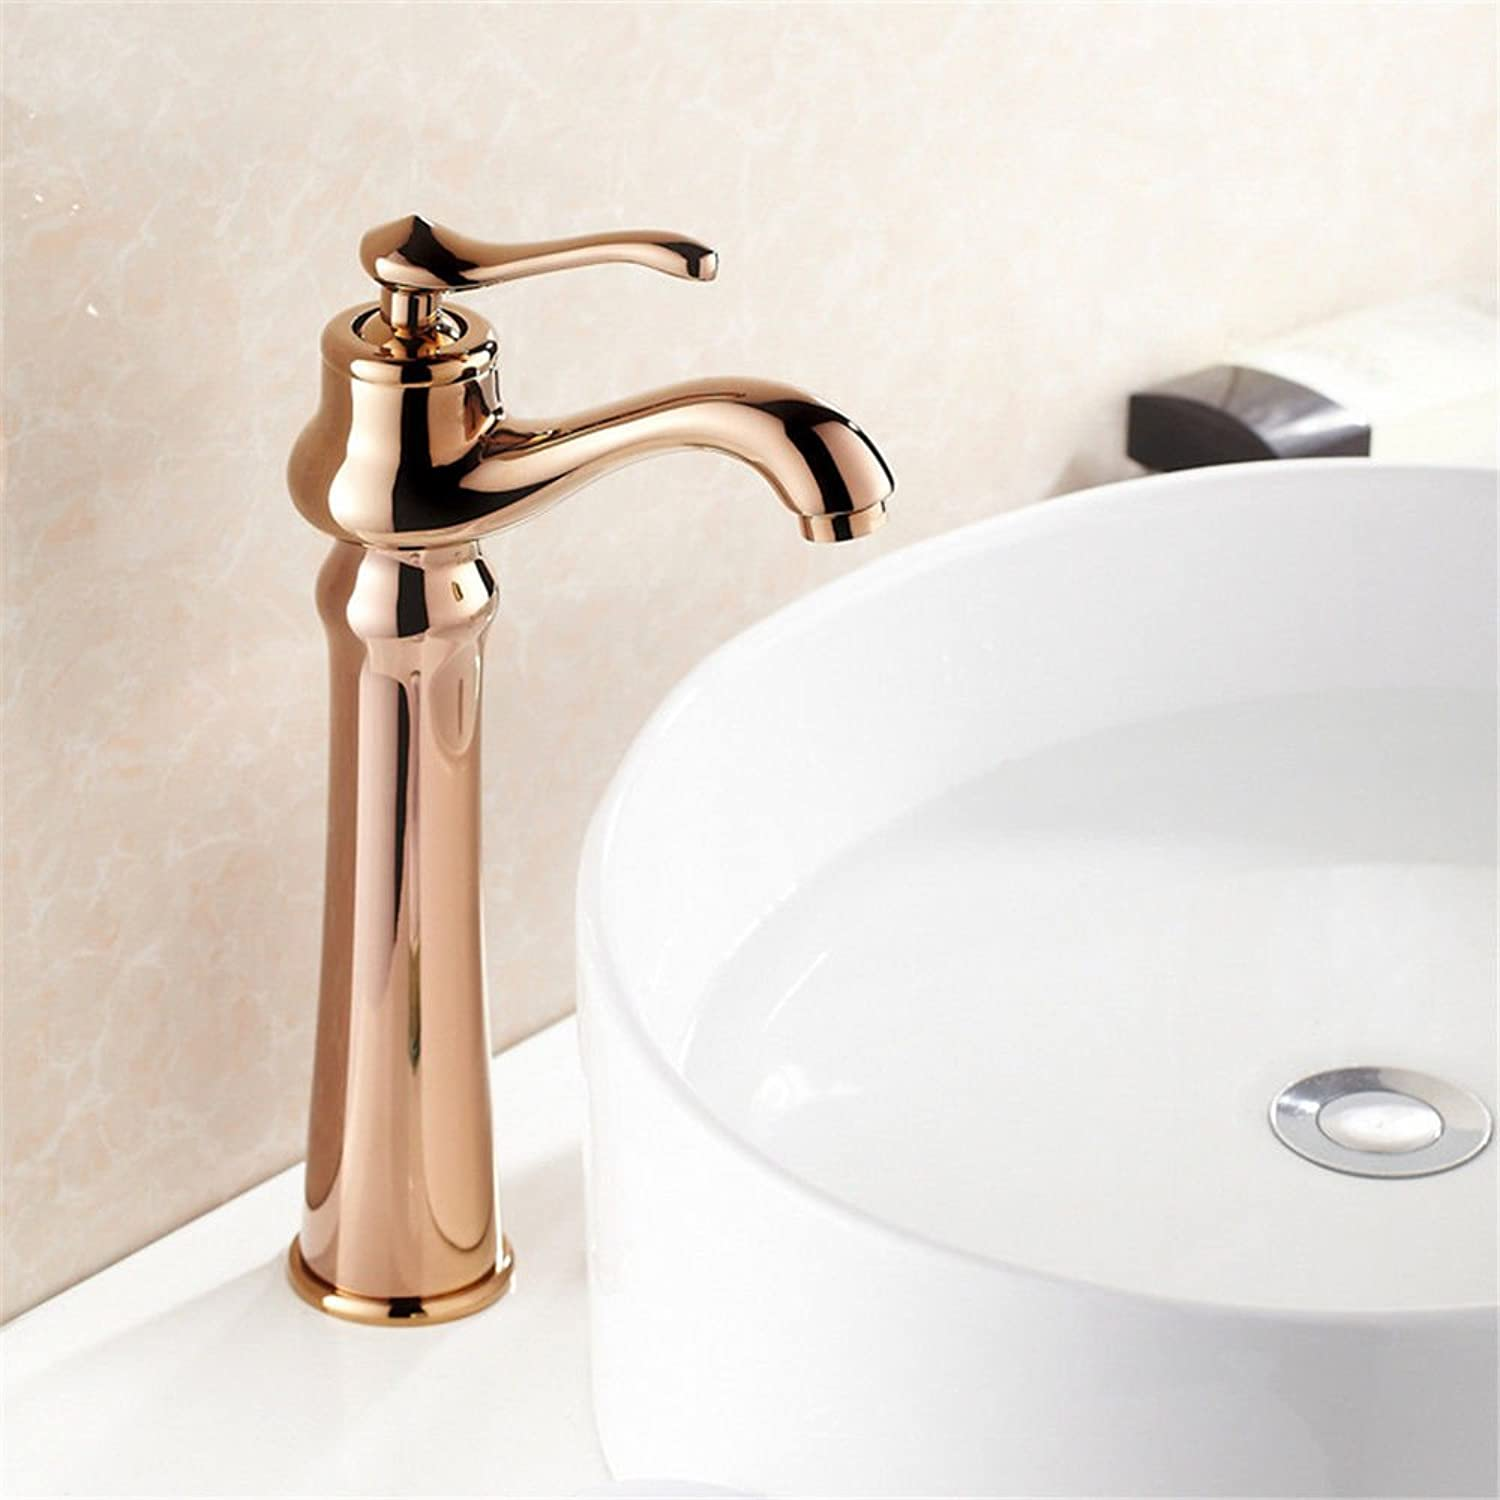 Hlluya Professional Sink Mixer Tap Kitchen Faucet Basin-copper cold water faucet antique gold lowered Basin dual pink gold sink mixer